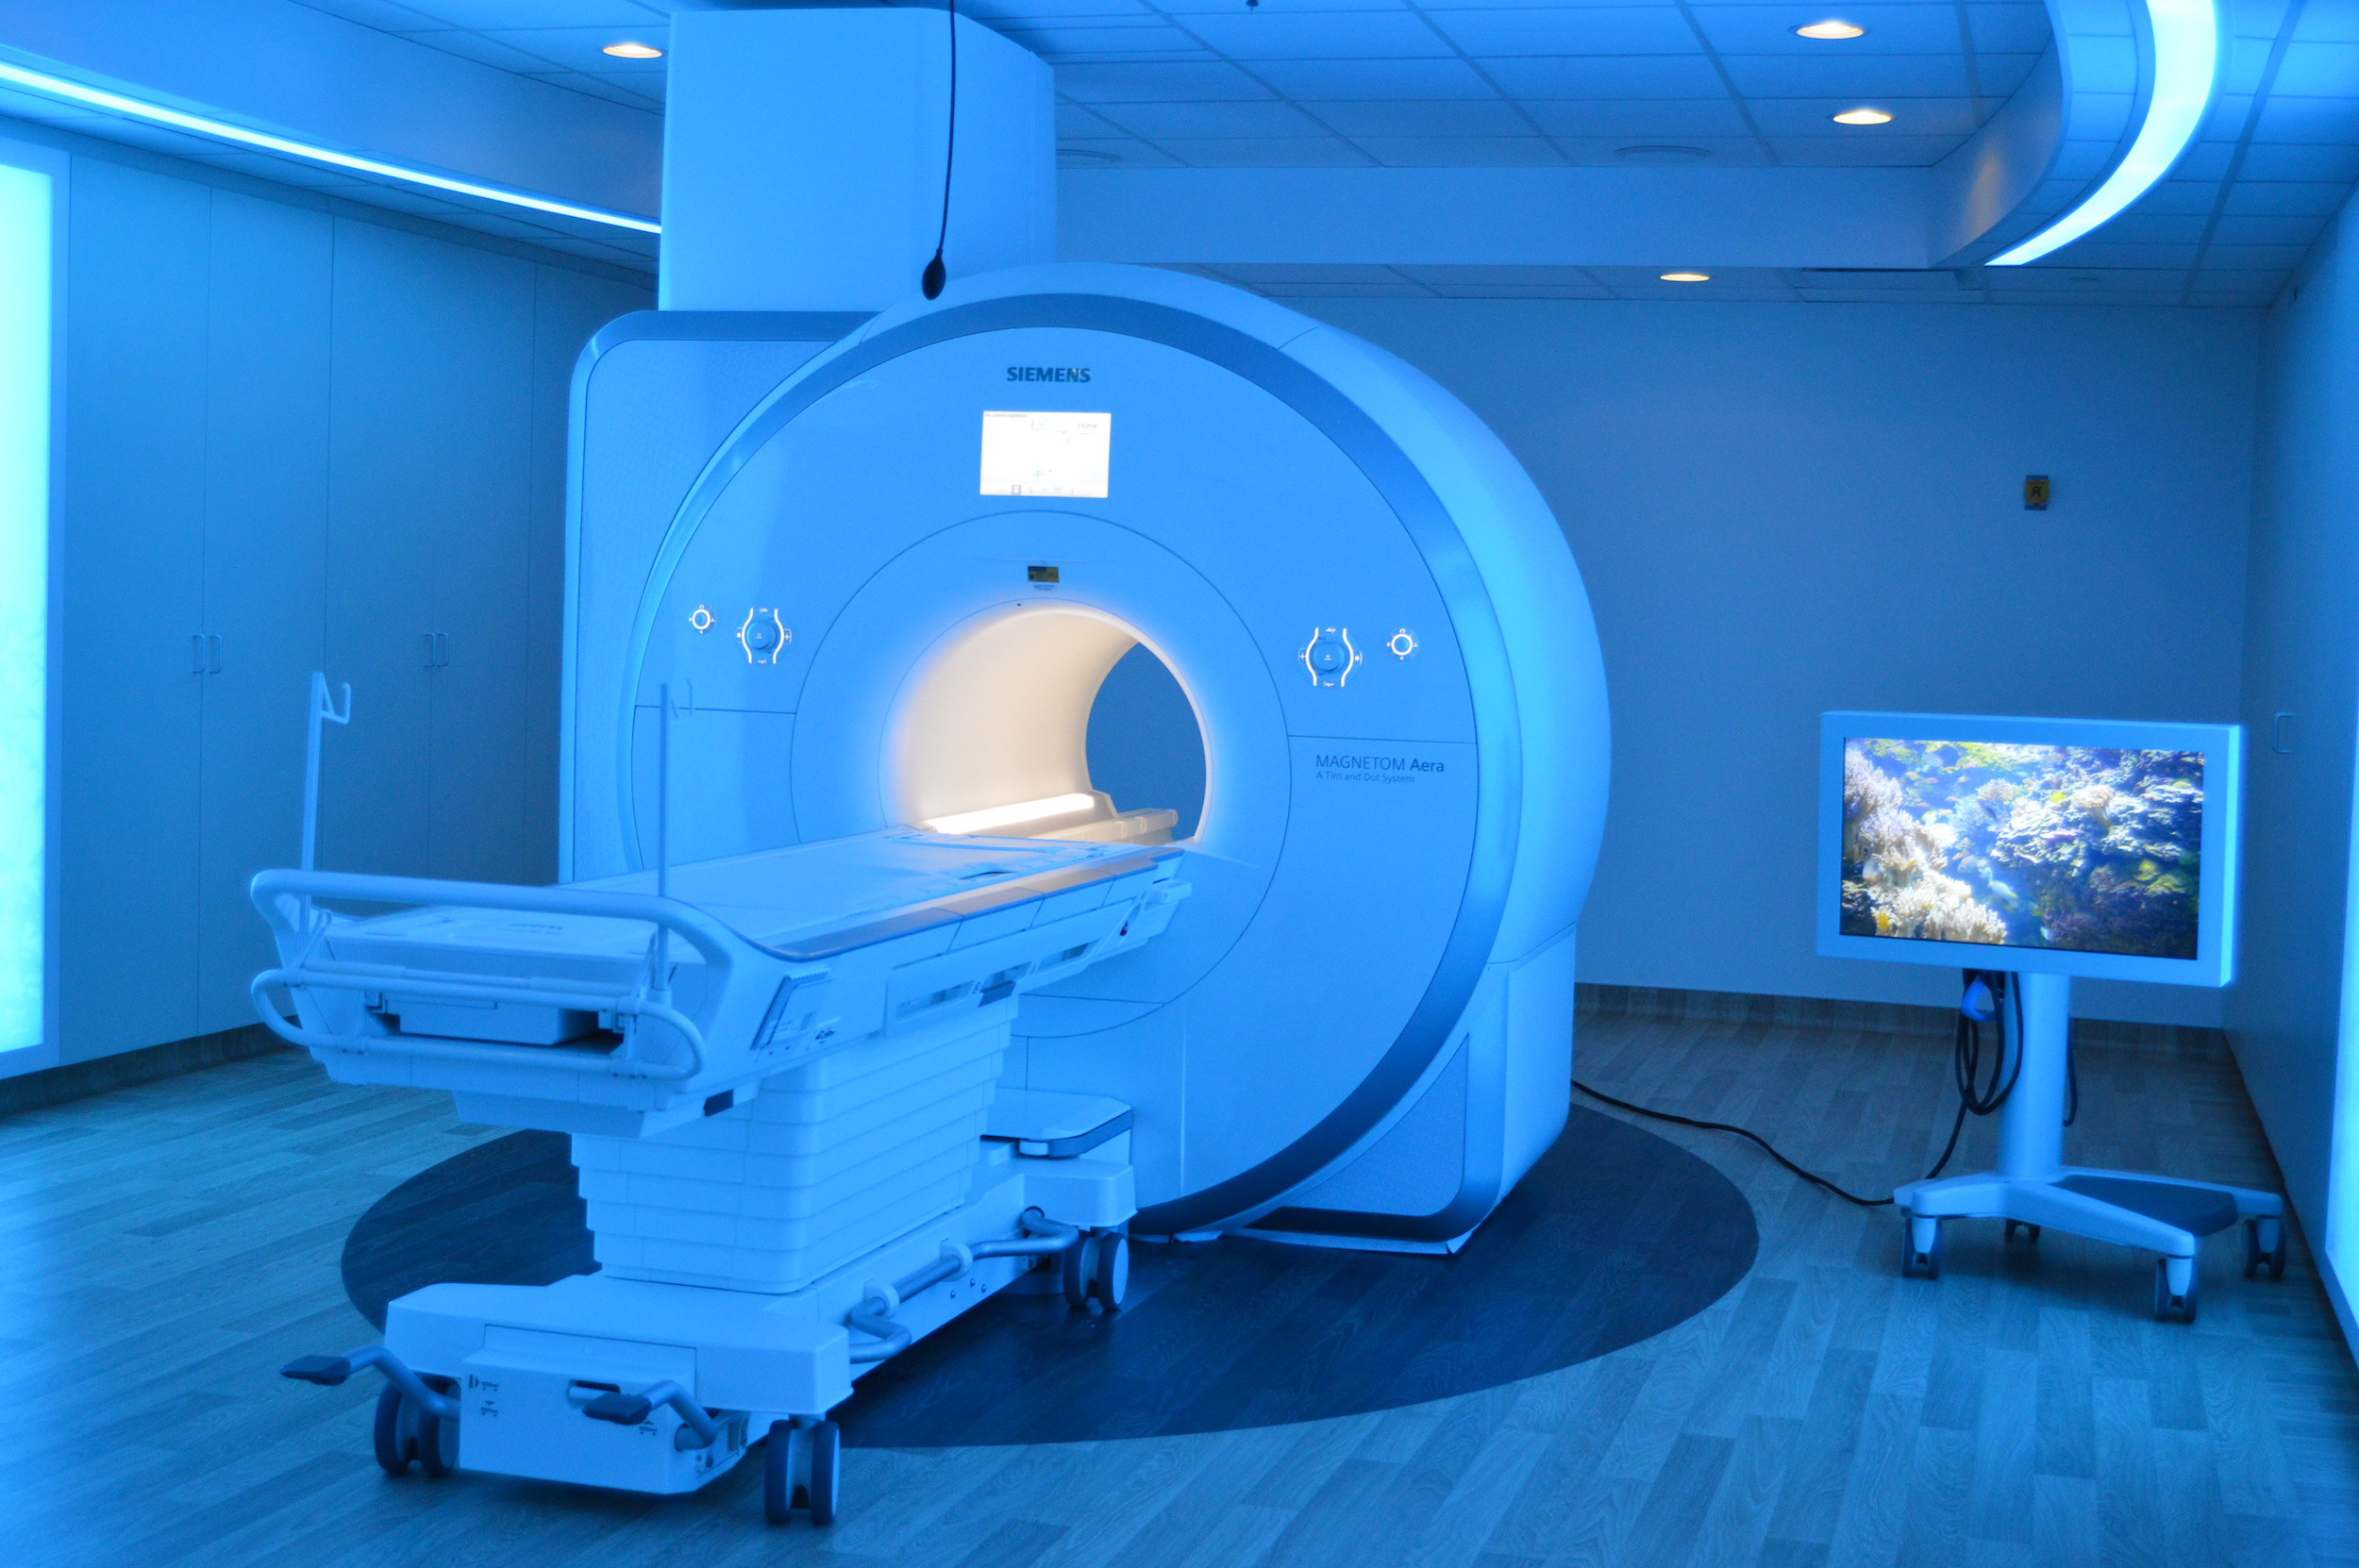 BroMenn is one of just five hospitals in the nation to install the new combination MRI and imaging suite technology that lets patients choose what they see and hear during the scan.